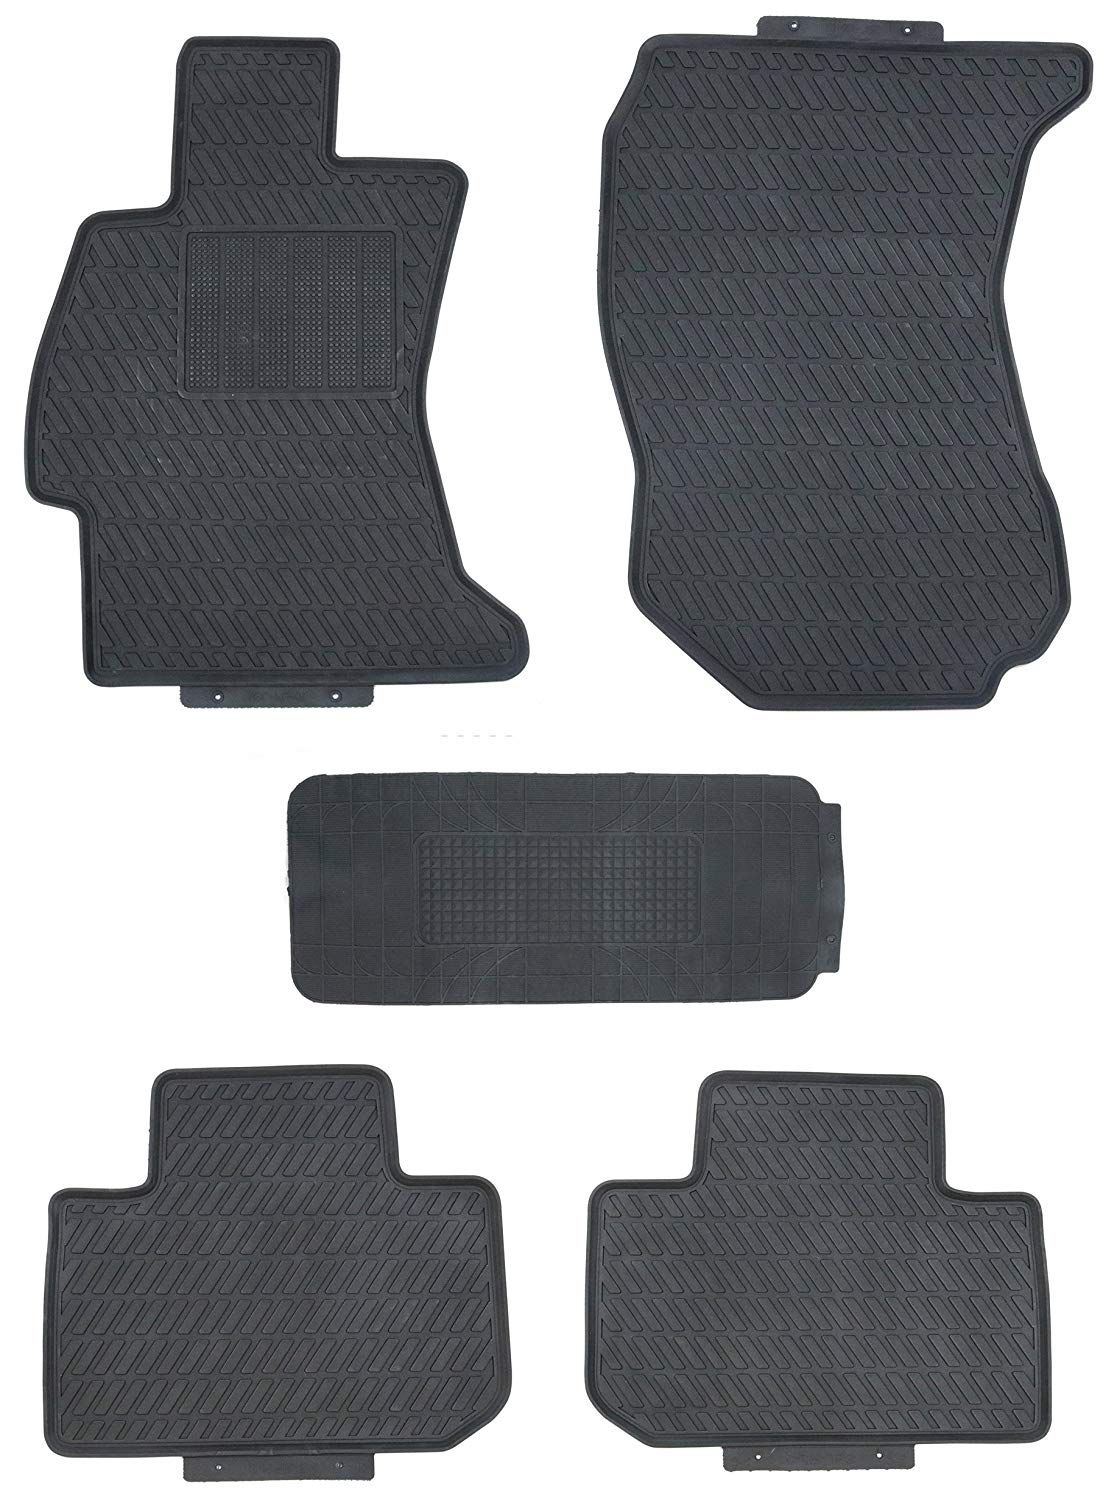 Tmb Motorsports Floor Mats For 2014 2018 Subaru Forester Custom Black Rubber All Weather Read More Reviews Of The Product Subaru Forester Subaru Floor Mats